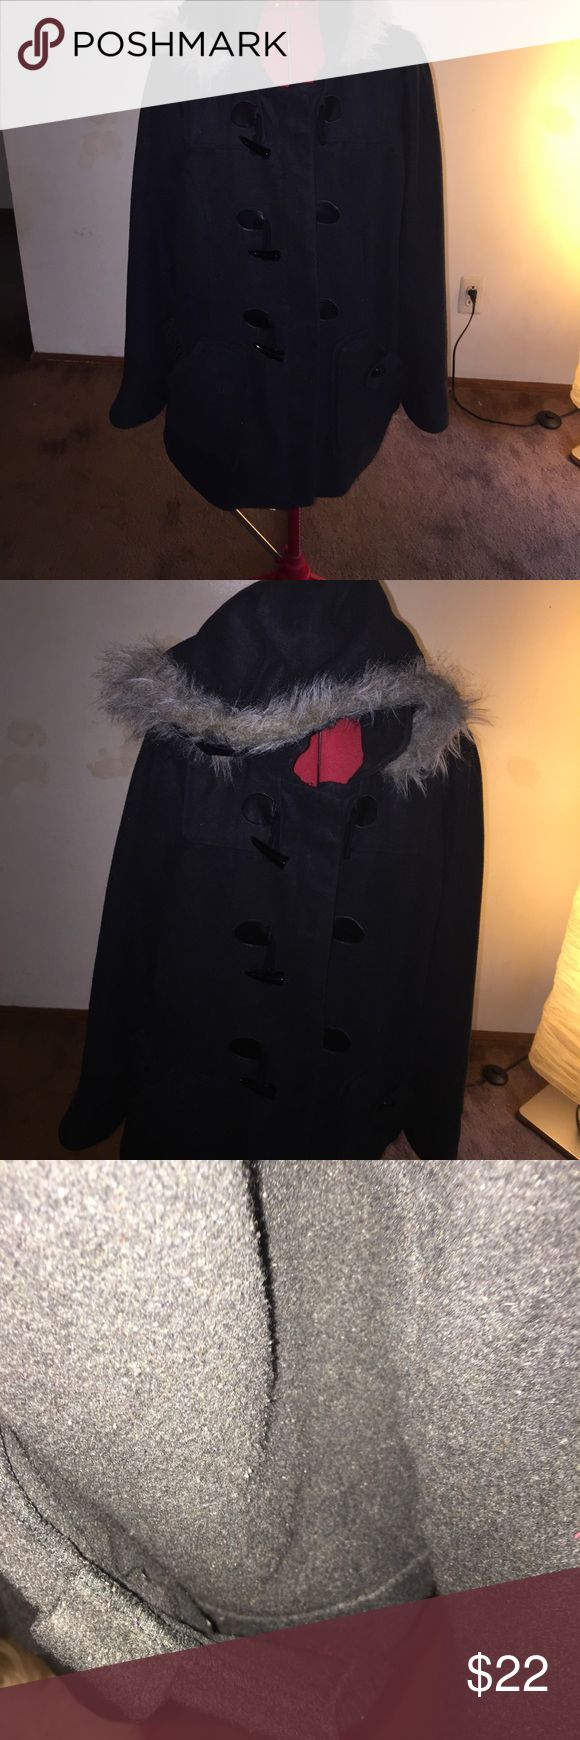 Ladies winter coat Black with fur hood. Good condition. Left pocket needs a stitch. VERY warm Jackets & Coats Pea Coats